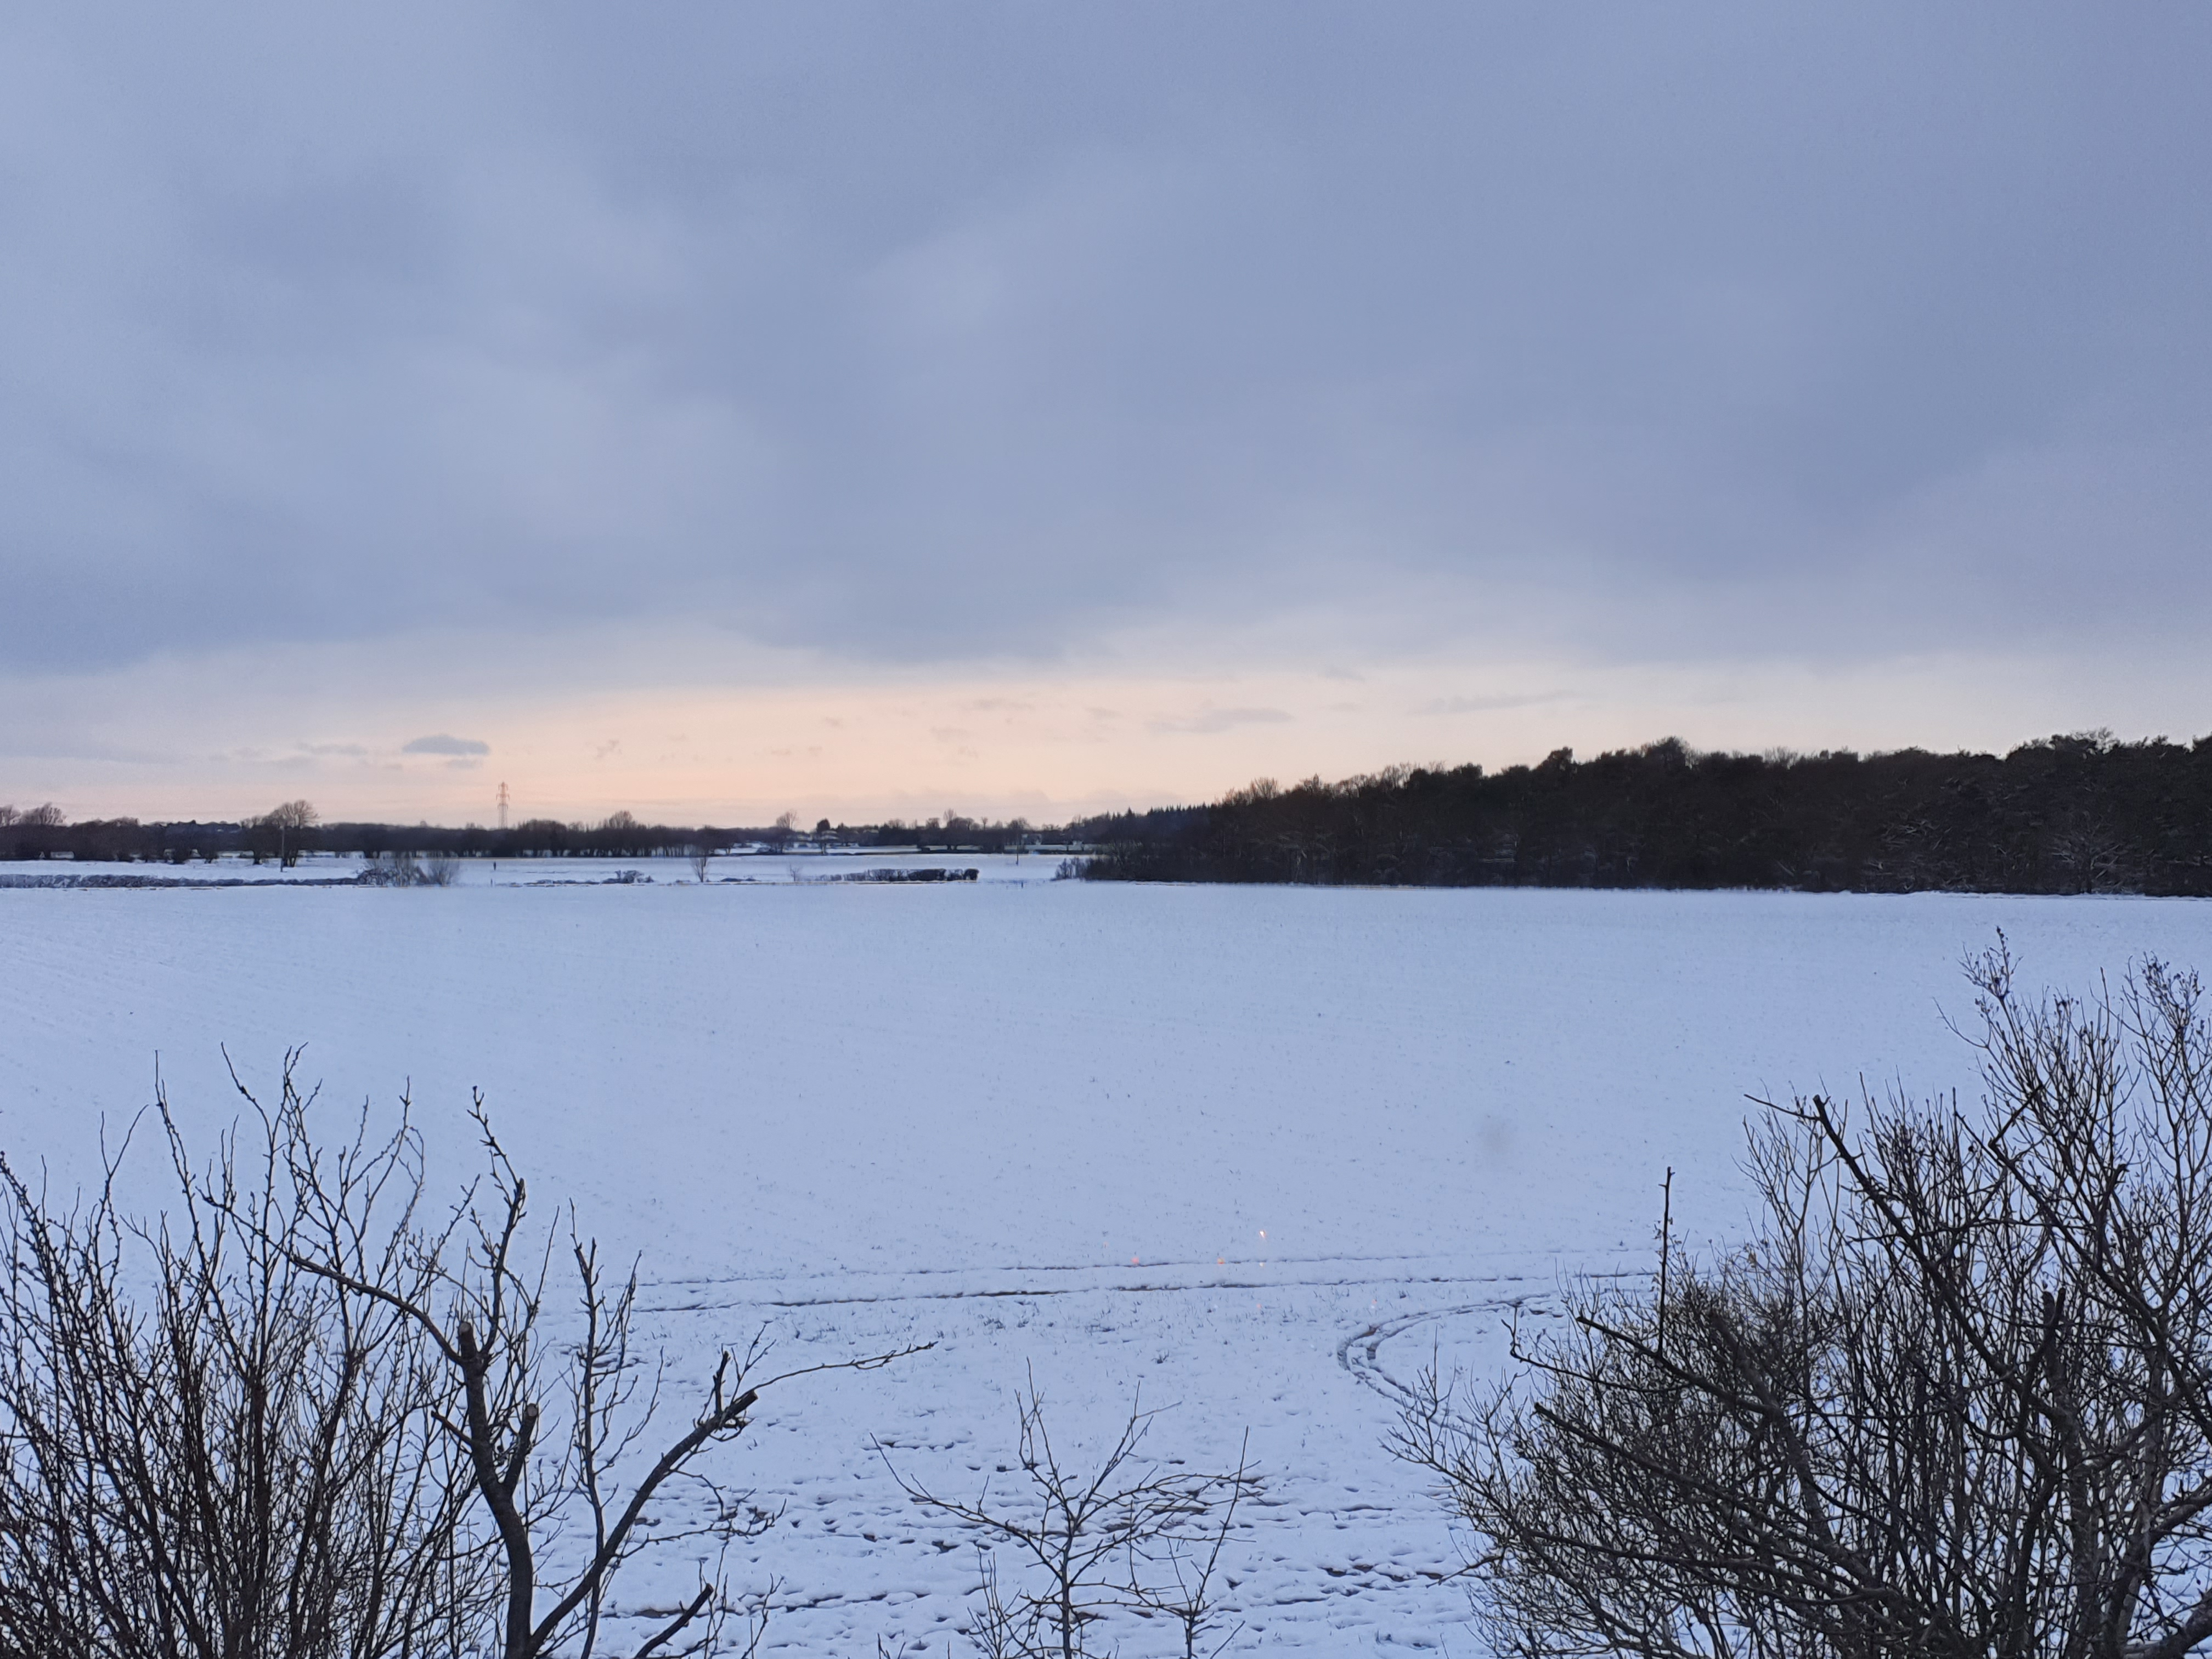 A snowy horizon with snow clouds